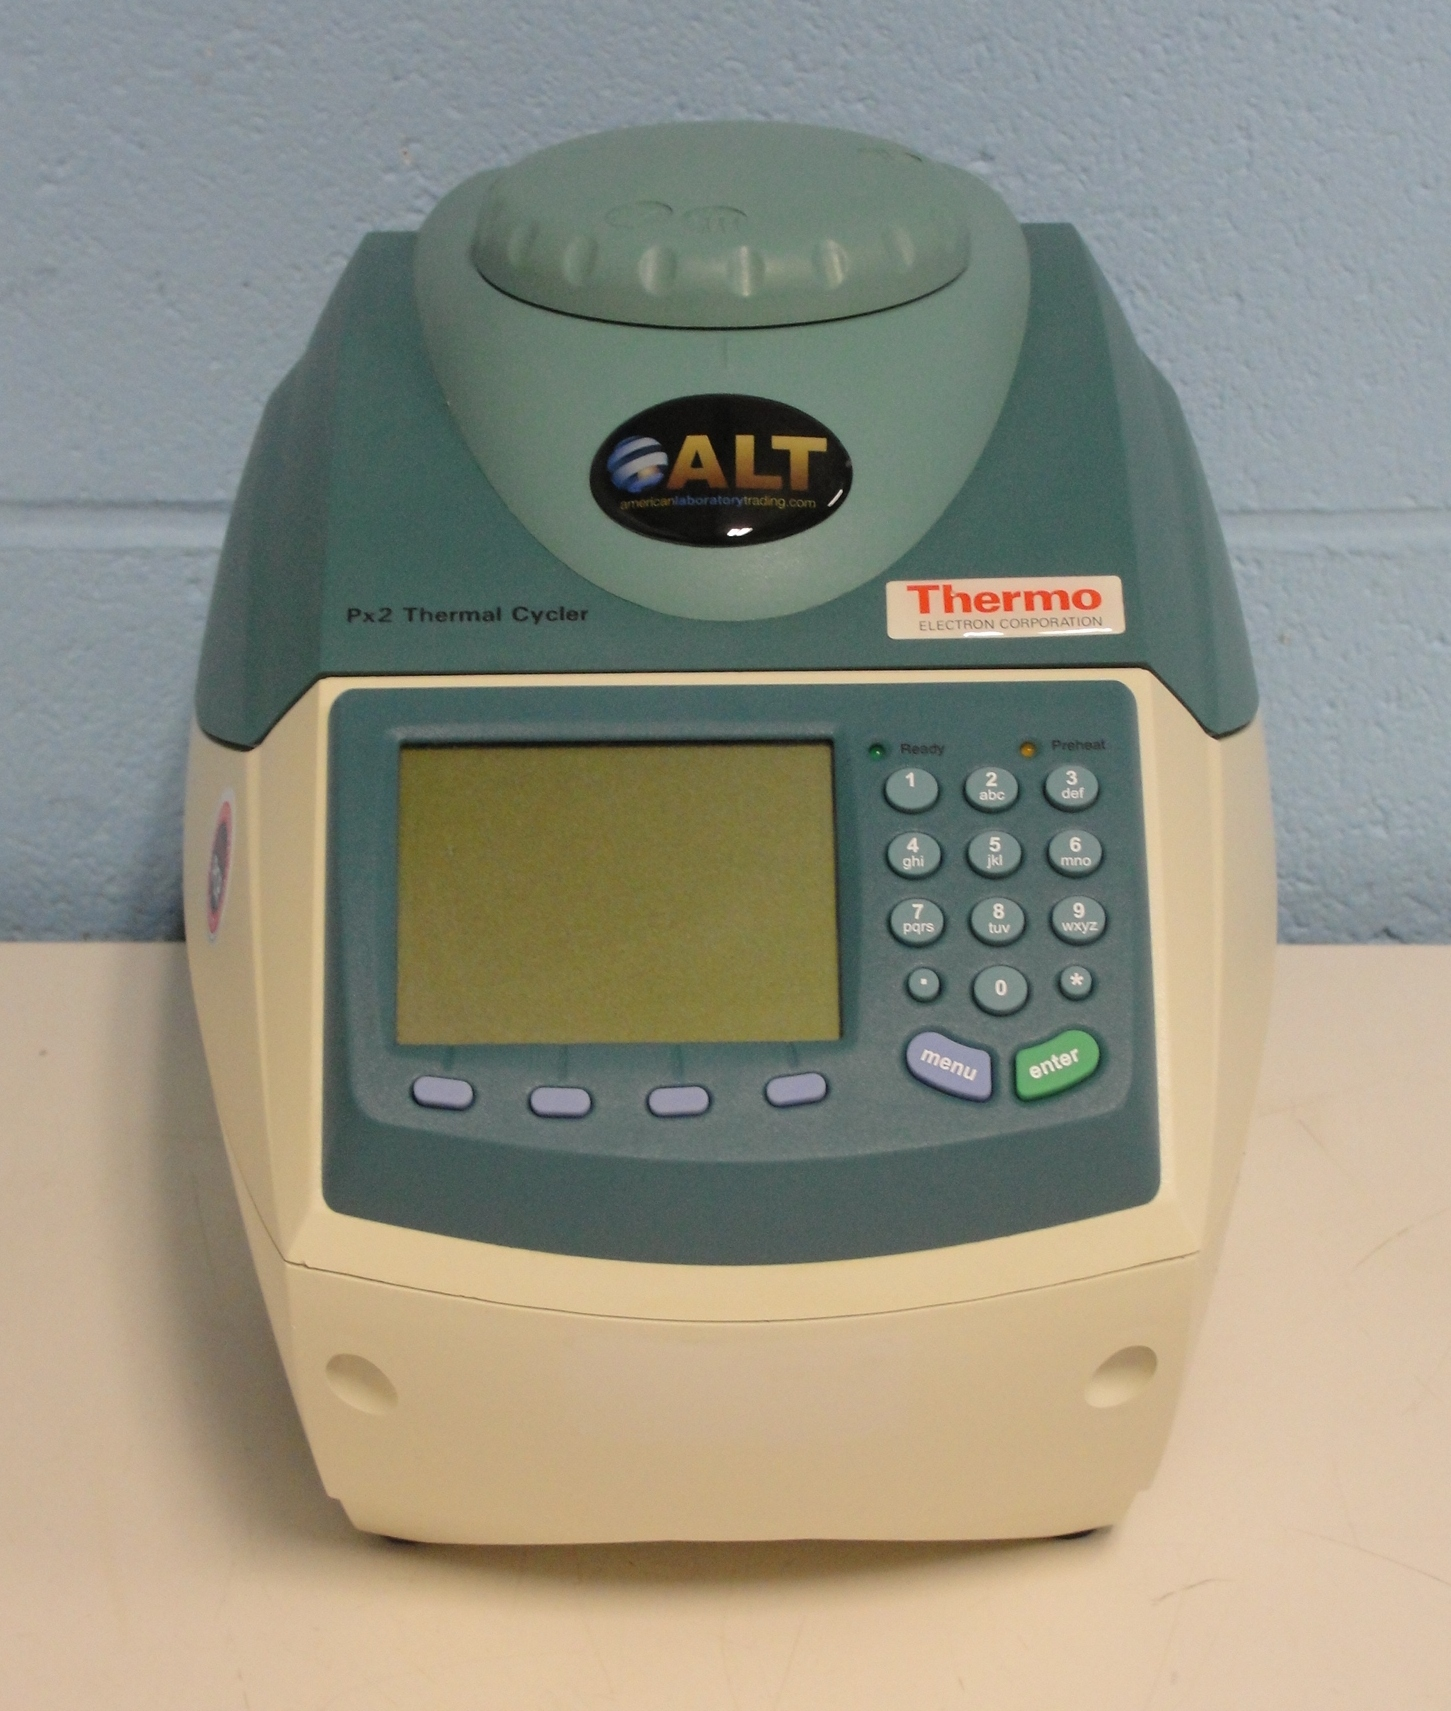 Thermo Px2 PCR / Thermal Cyclers